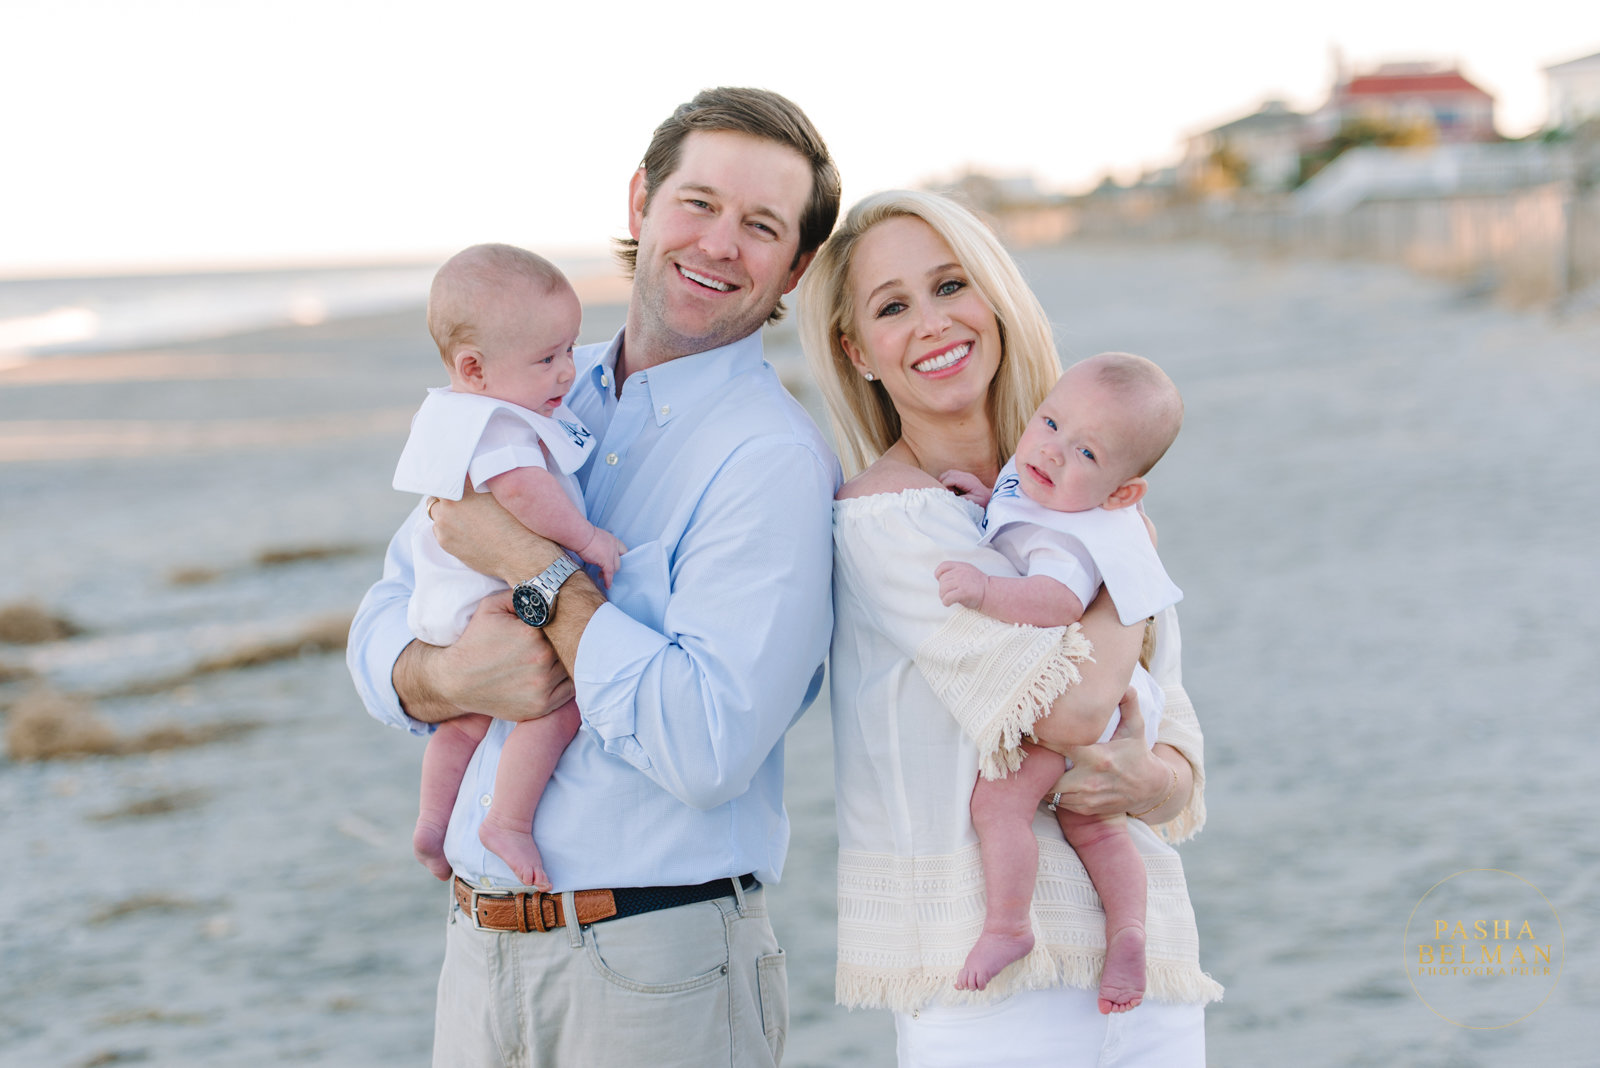 Myrtle Beach Family Portrait Photography by Top Myrtle Beach Photographer Pasha Belman